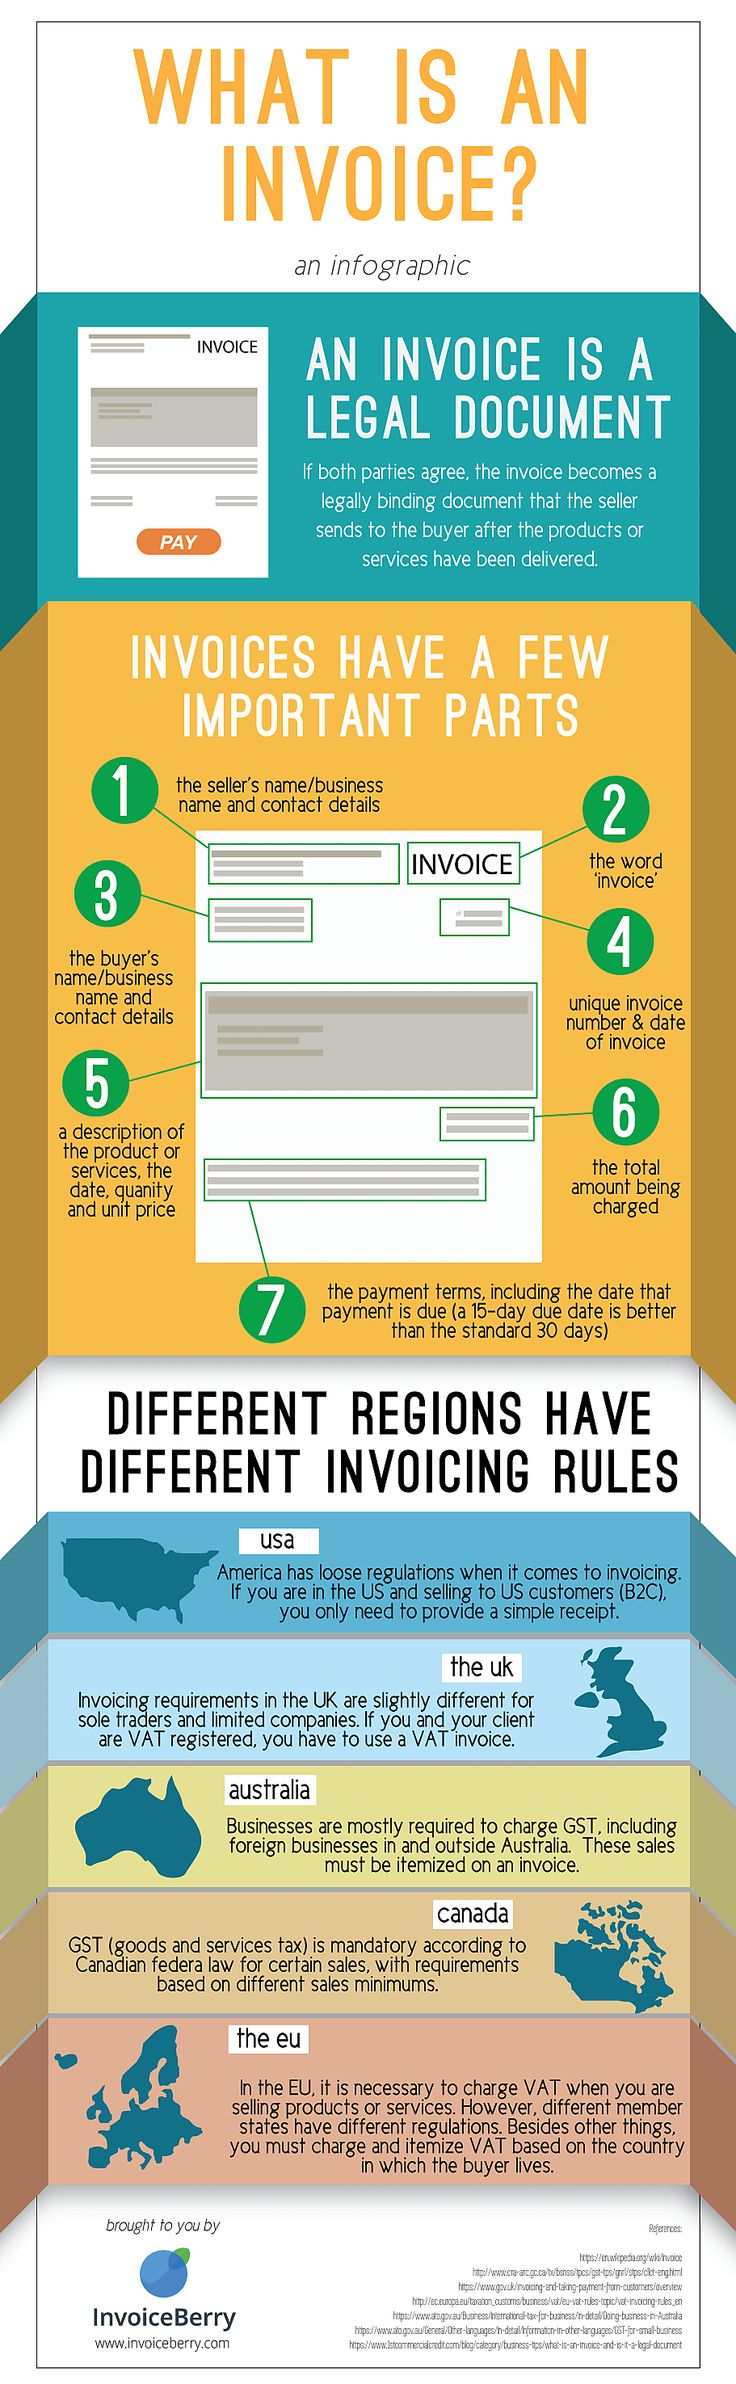 Everything you need to know about an invoice and how to create one  http://blog.invoiceberry.com/2017/01/what-is-an-invoice-how-can-i-make-one/